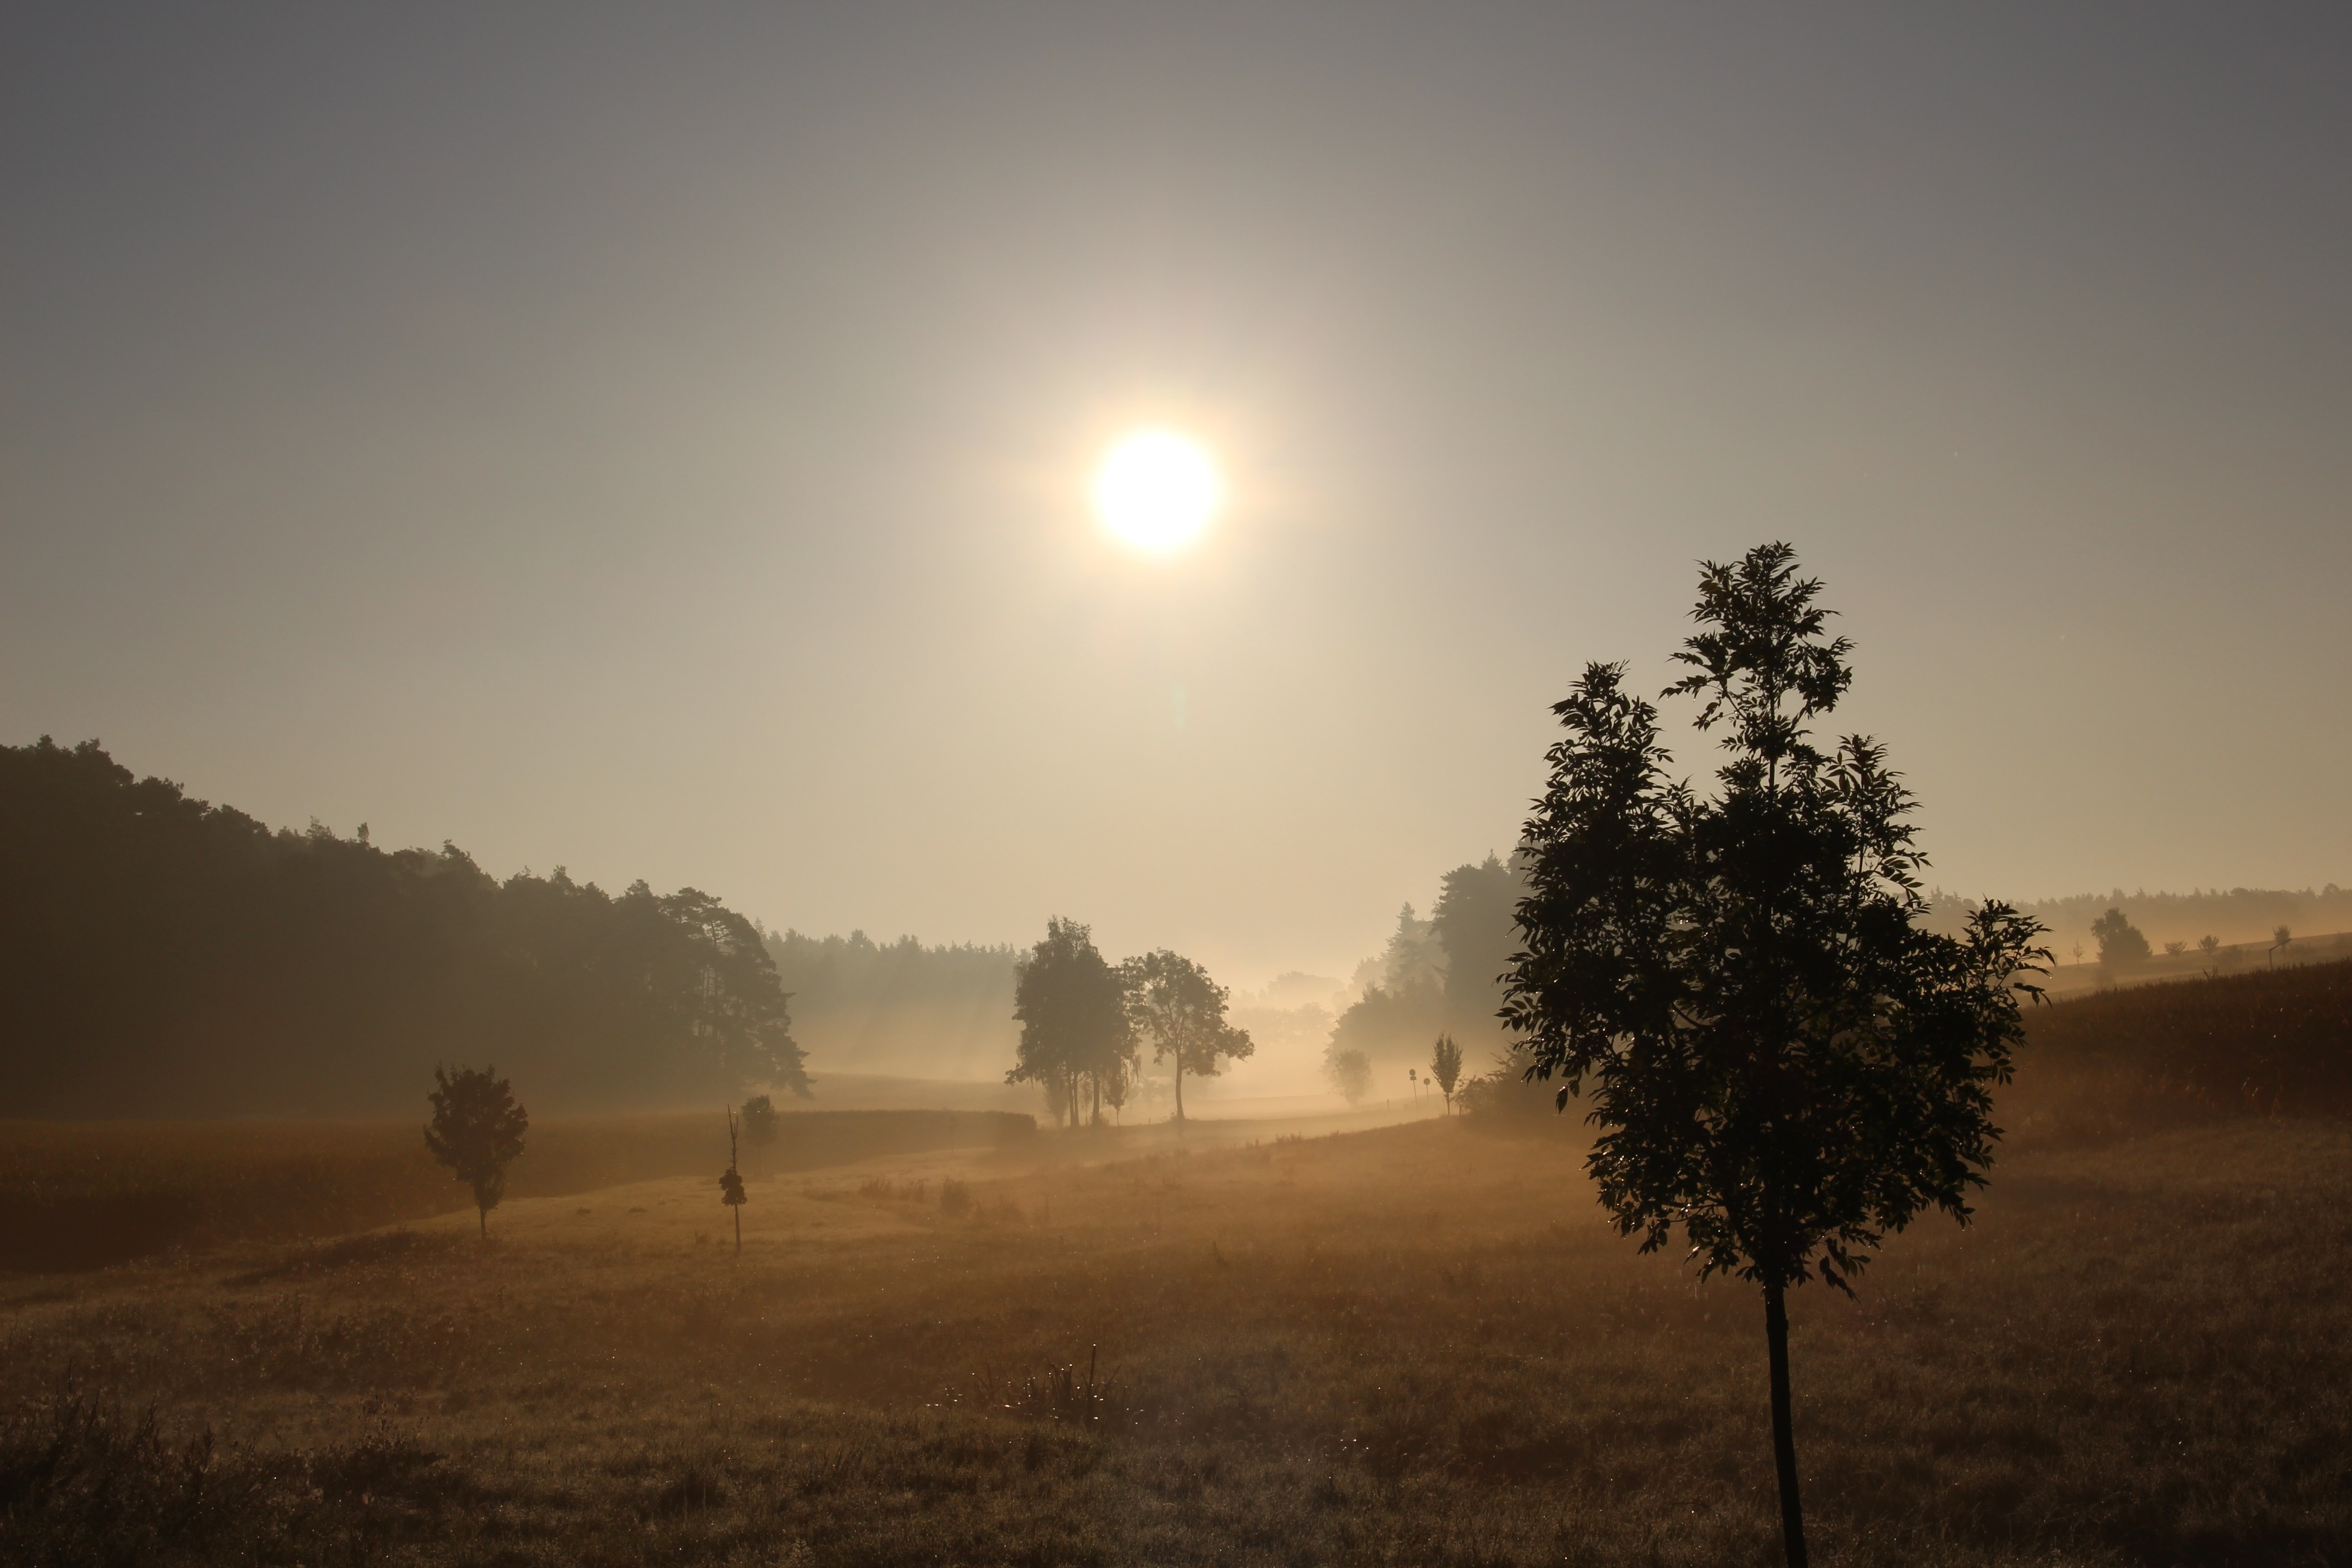 Bright sun in the sky over a hazy field with sparse trees